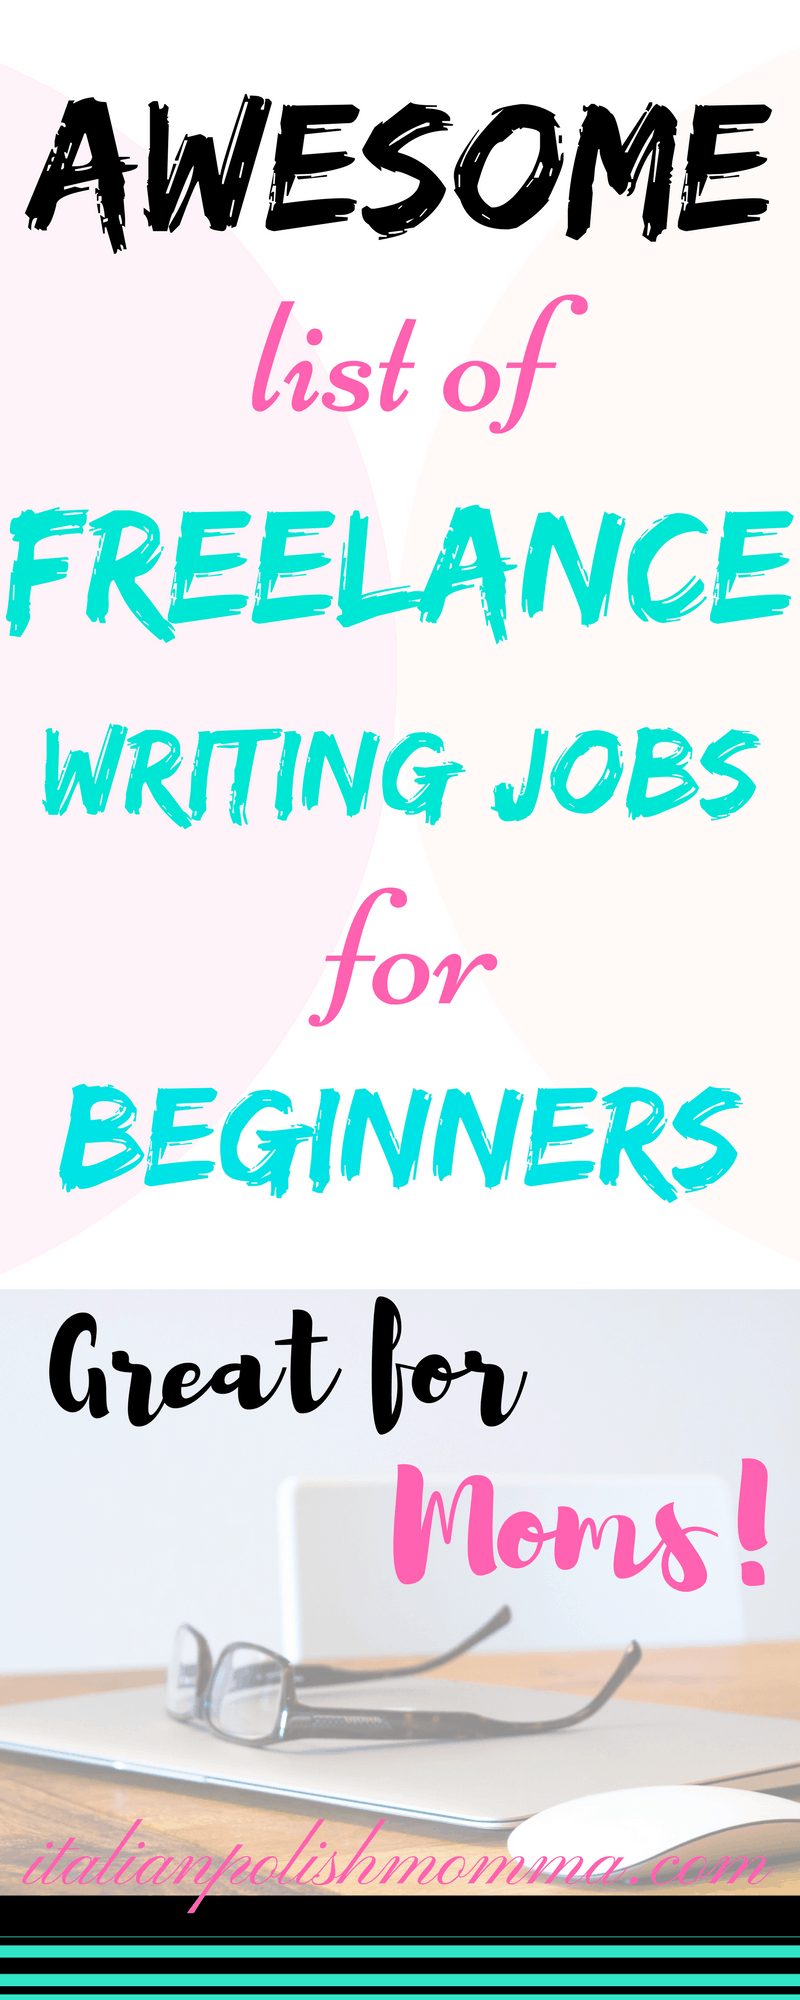 Best freelance jobs for new writers italianpolishmomma